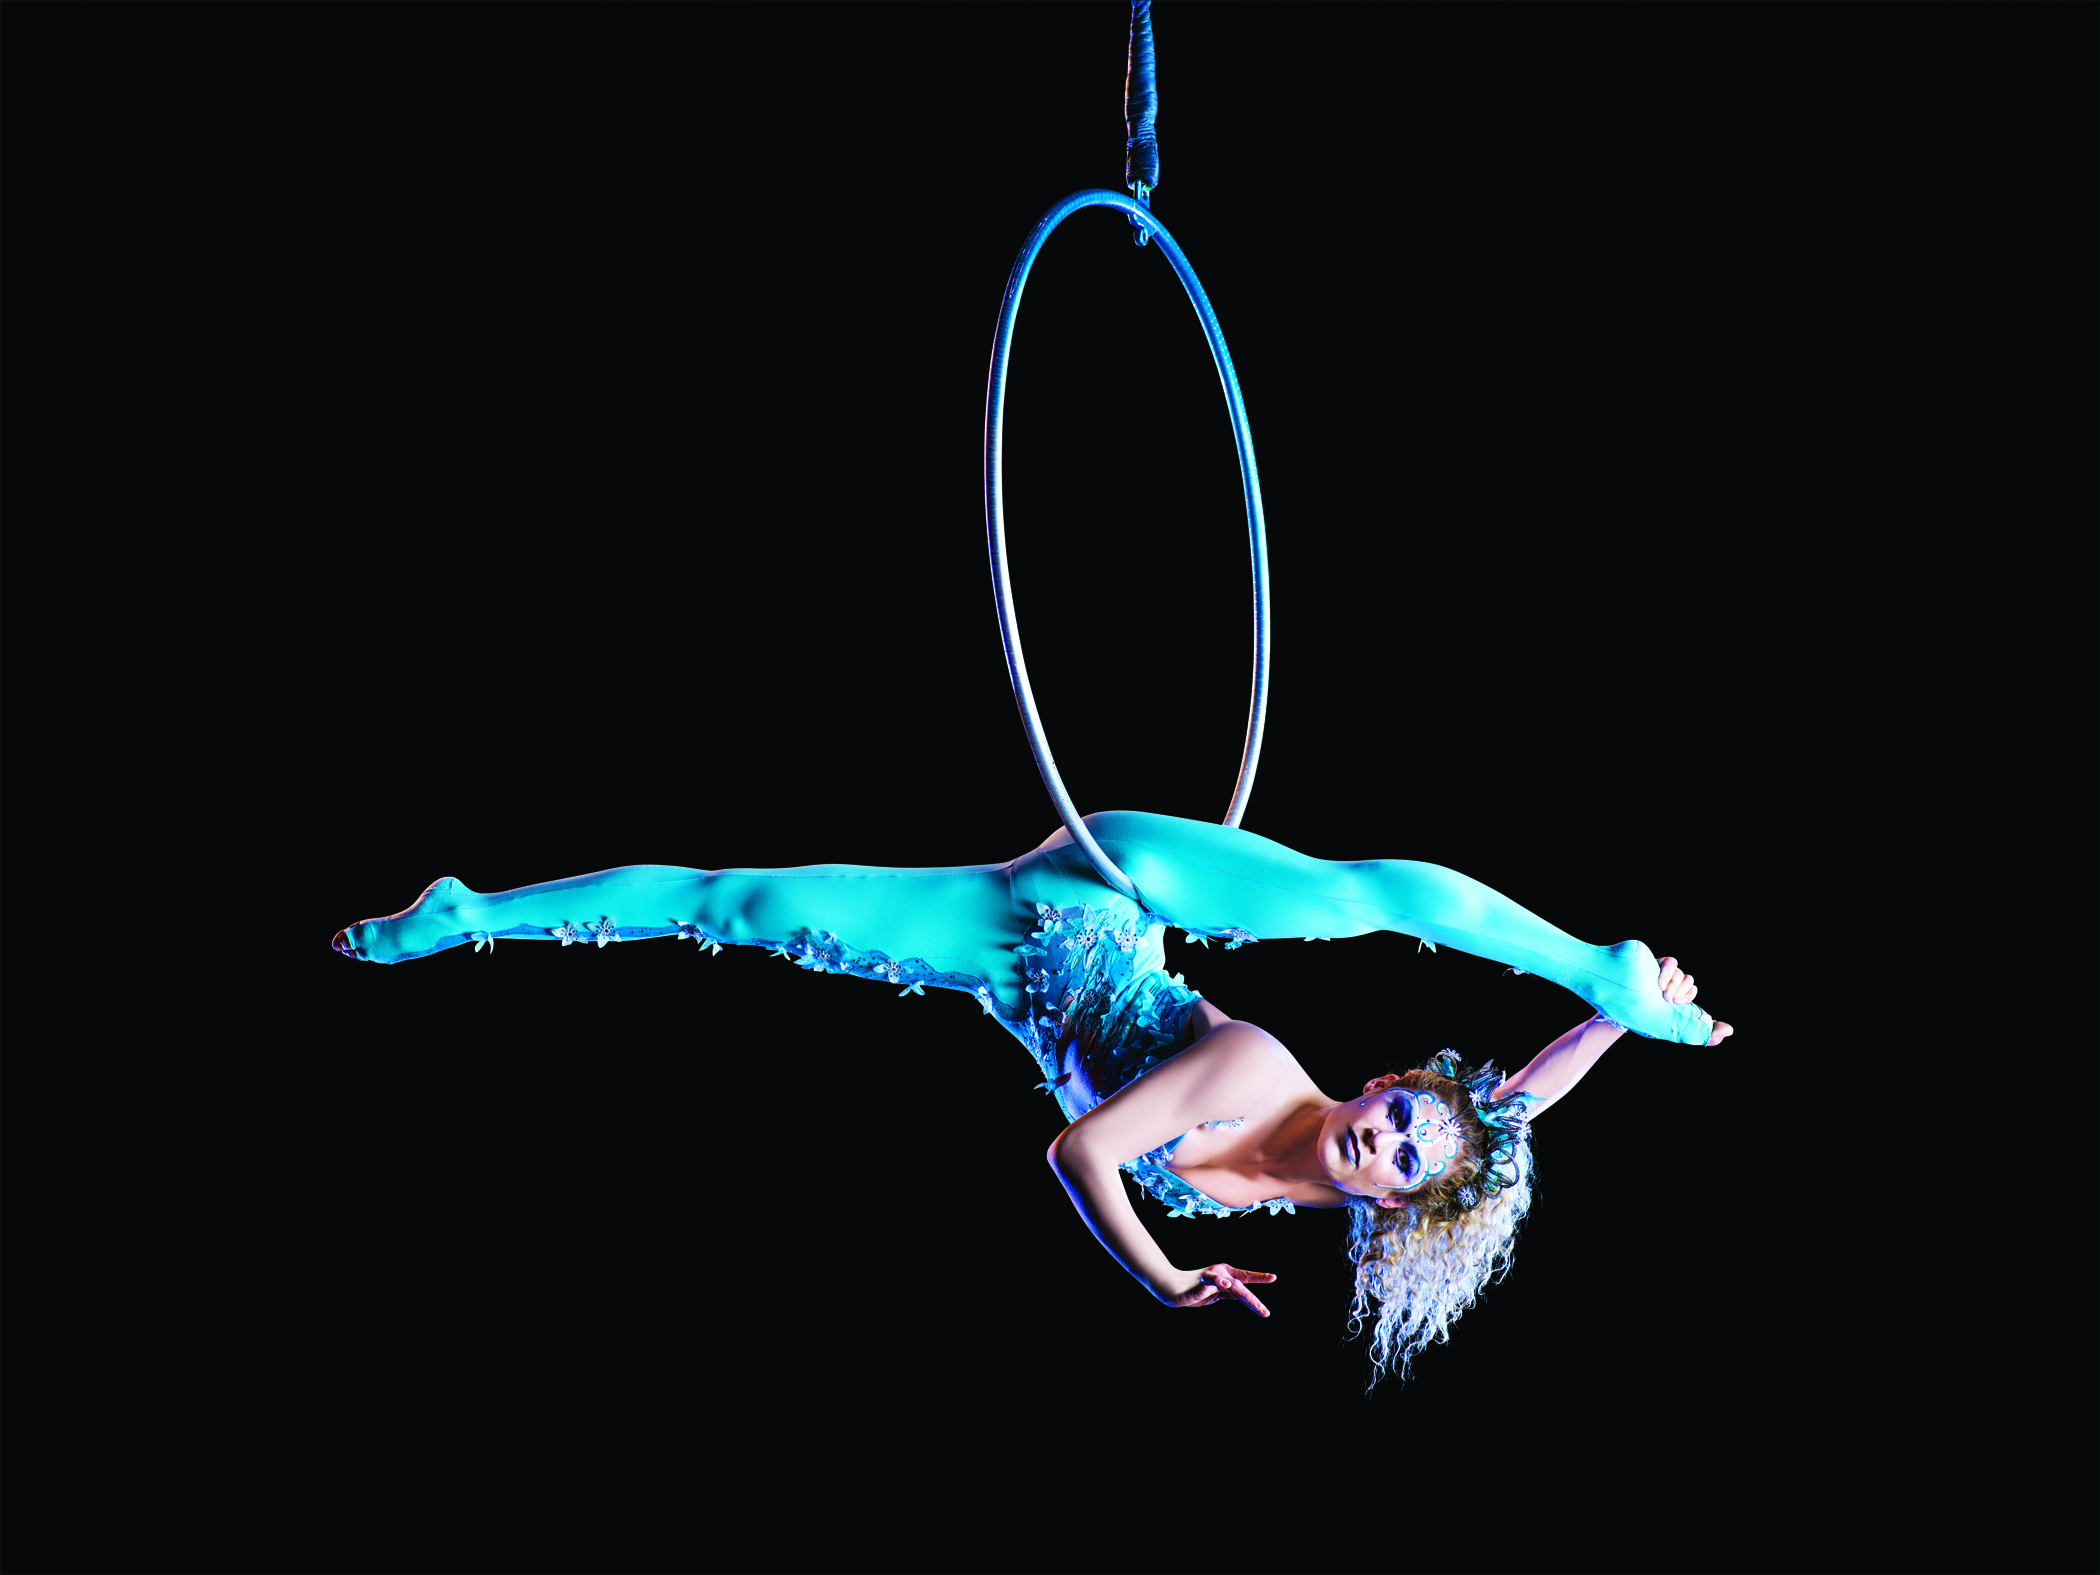 An acrobat performs for Cirque du Soleil, suspended on a cerceau. When gymnasts retire from competition, often at a young age, Cirque offers a continuation of a passion. Image supplied by Cirque du Soleil.